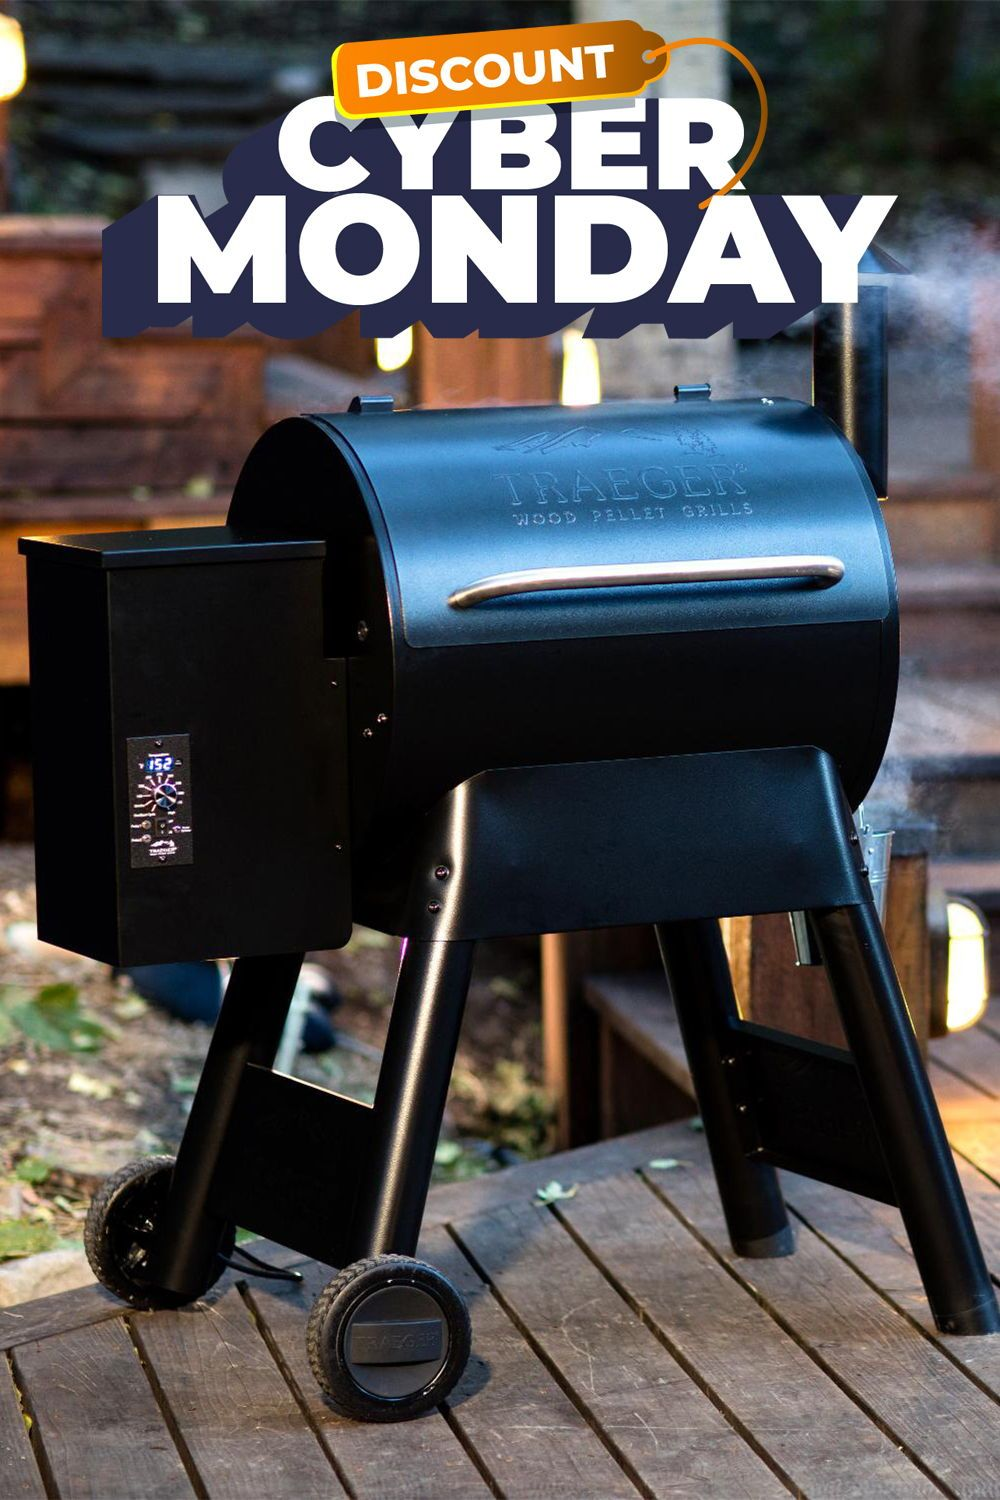 Smoker Grills With Discounts On Amazon Compare Before You Purchase Grills Forever Grilling Best Charcoal Grill Traeger Wood Pellets